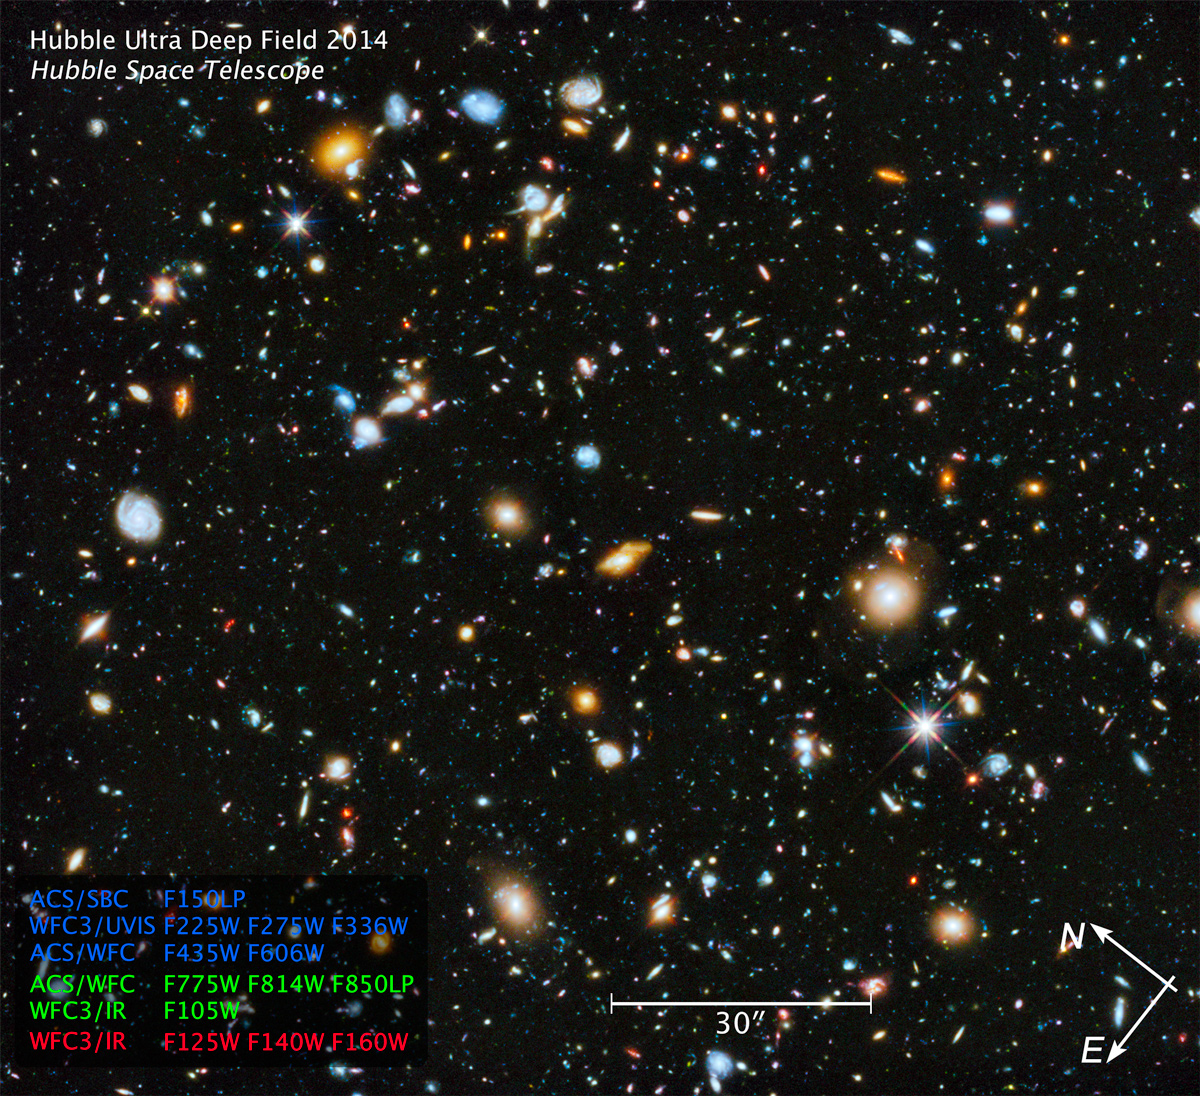 Compass and Scale Image for Hubble Ultra Deep Field 2014